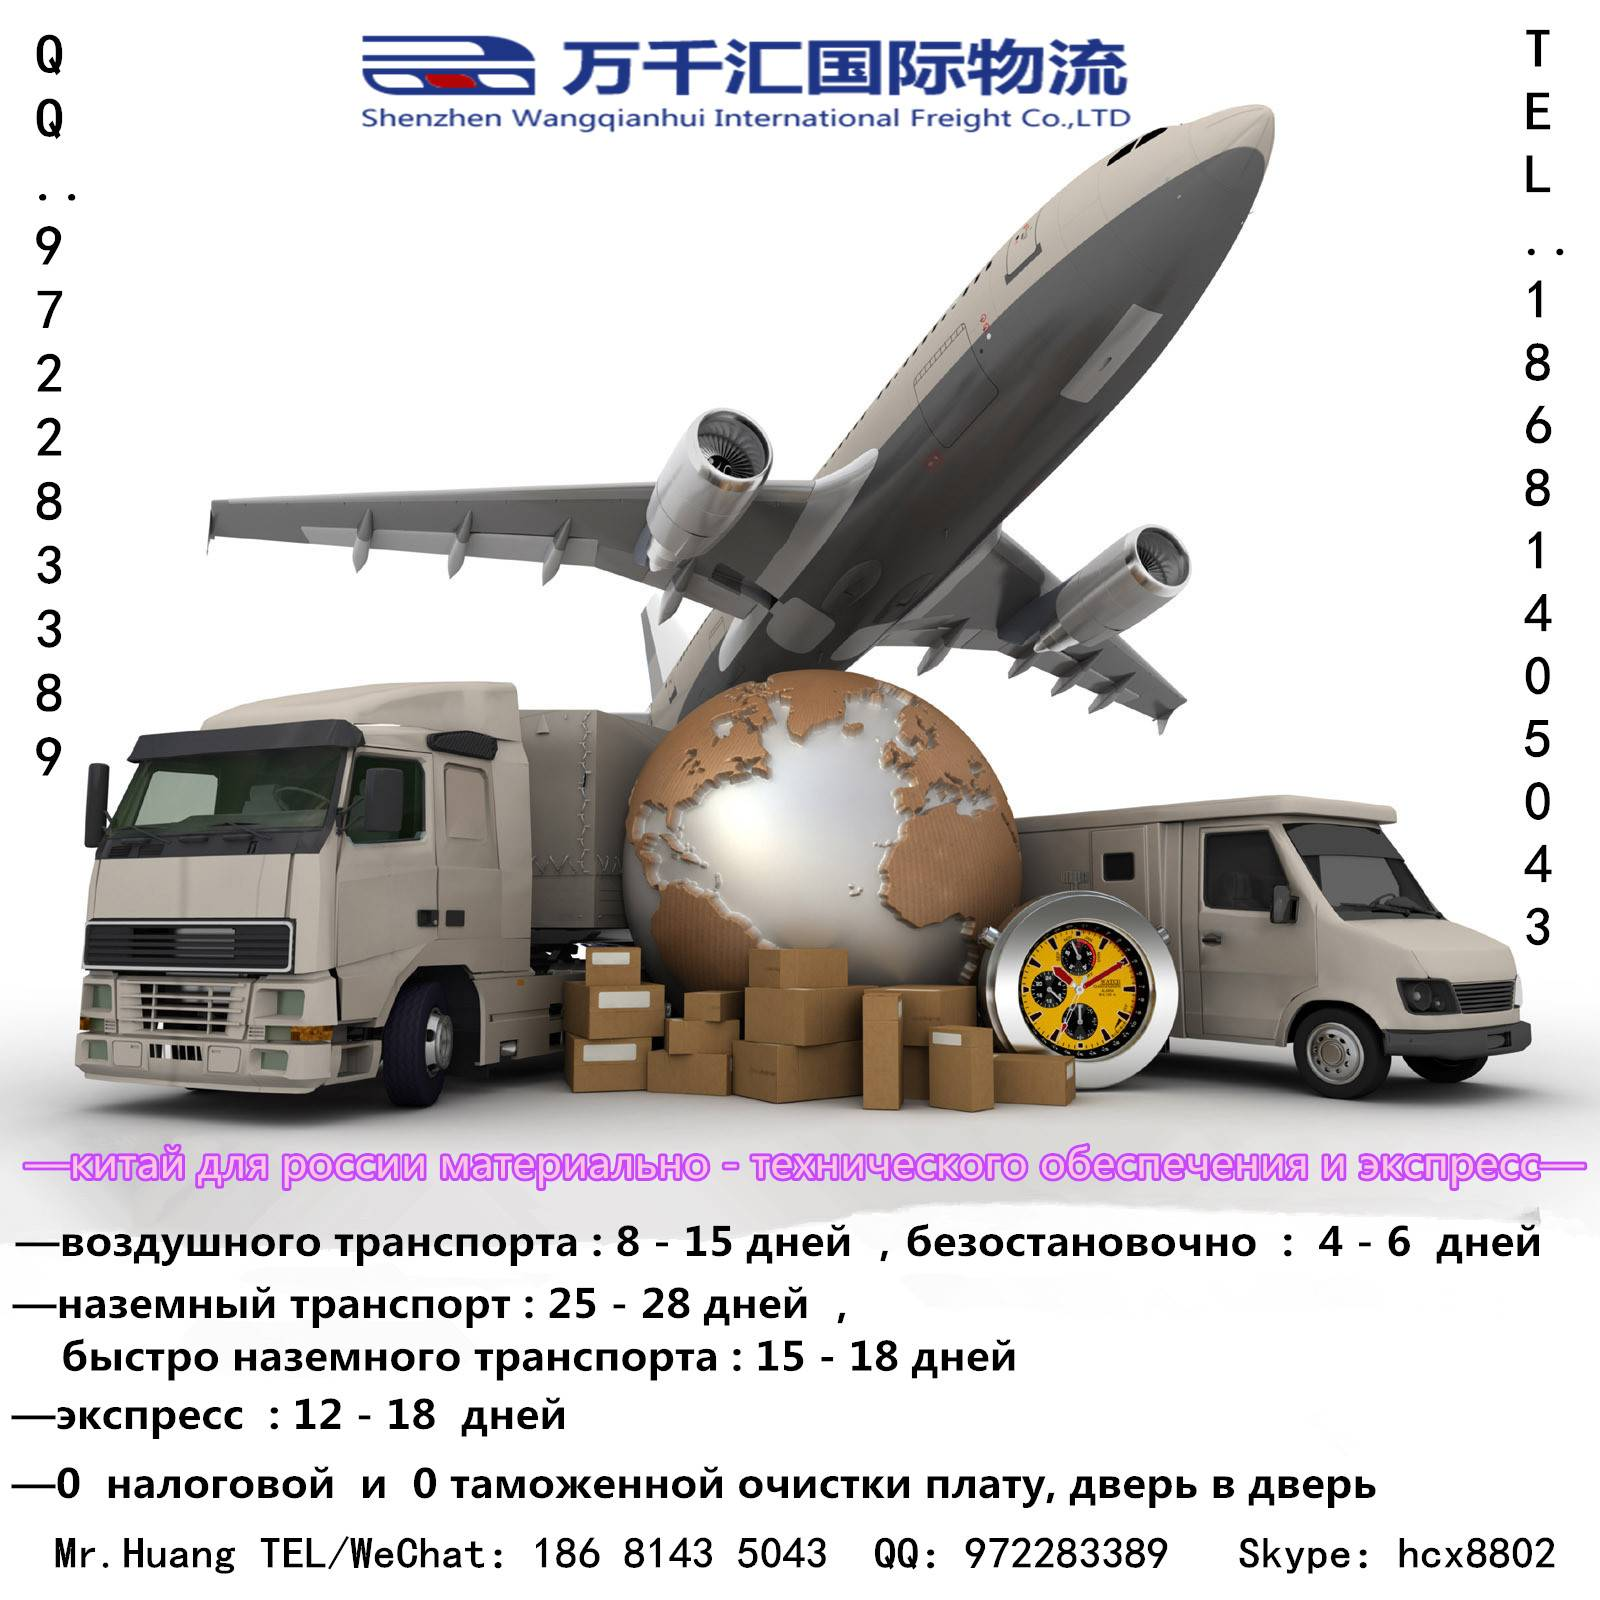 China to Russian air transport,Russia whole territory transport